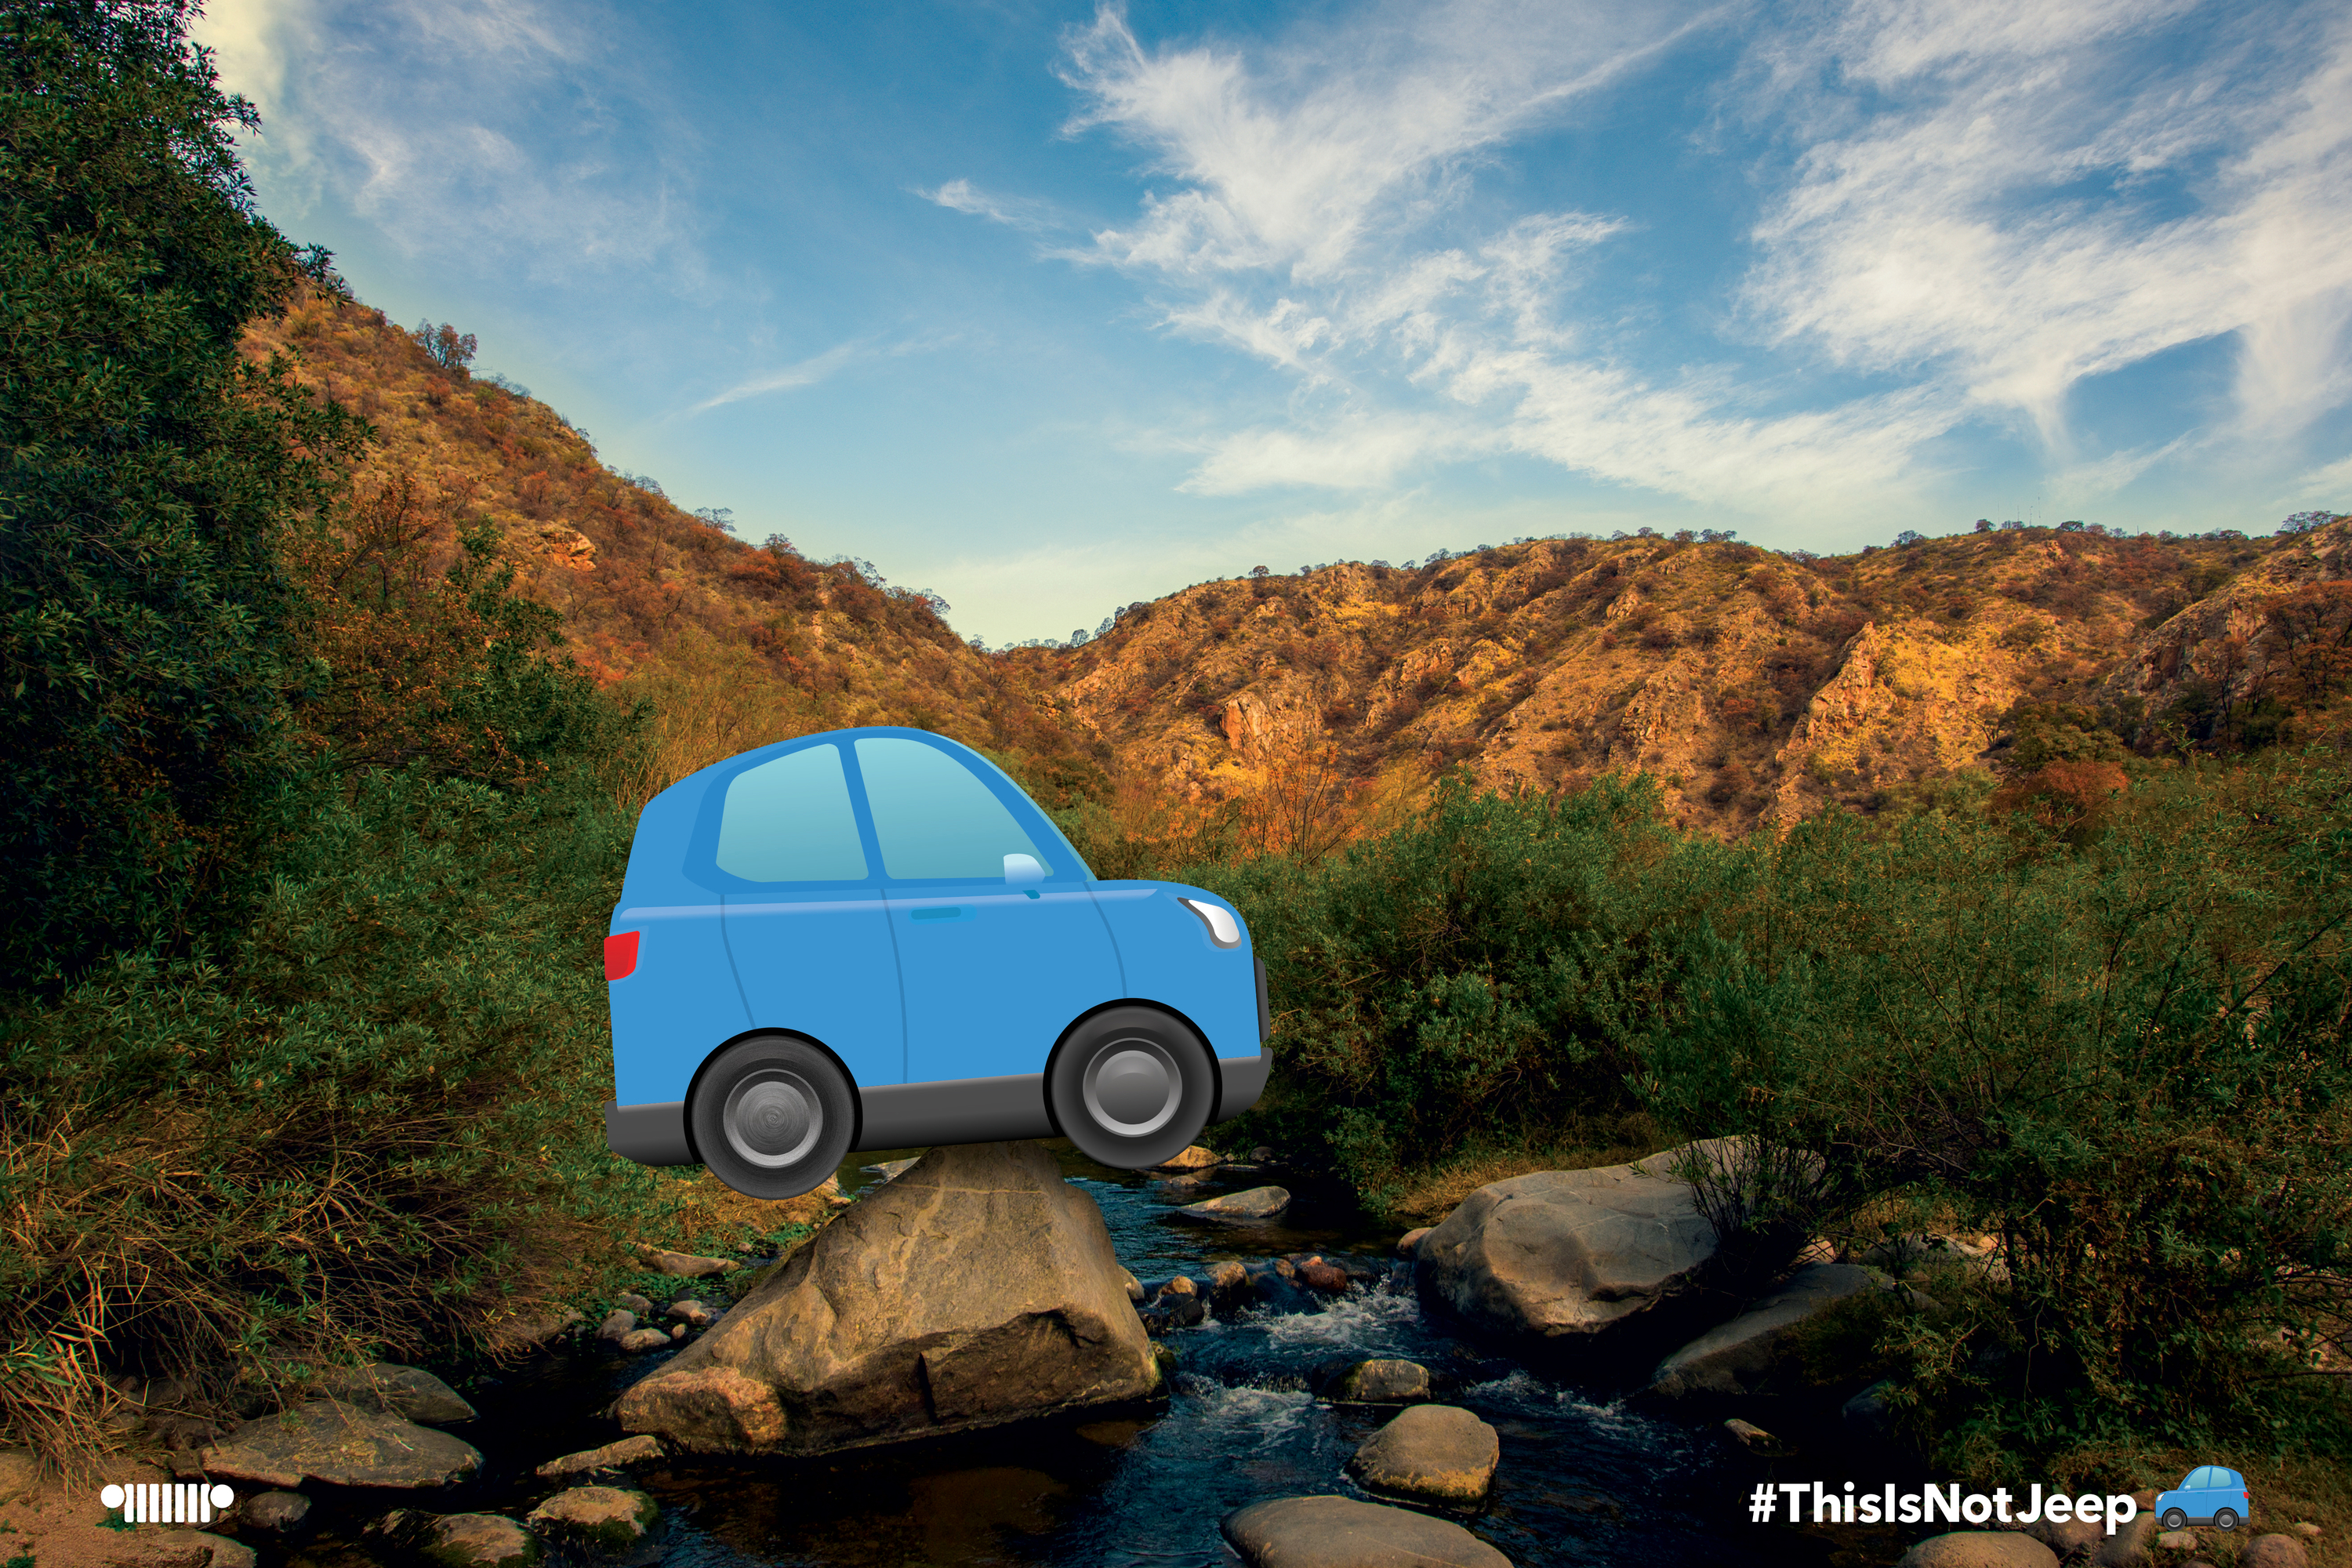 Jeep is liberated from an 'imposter' emoji and celebrates with '#ThisIsNotJeep' campaign